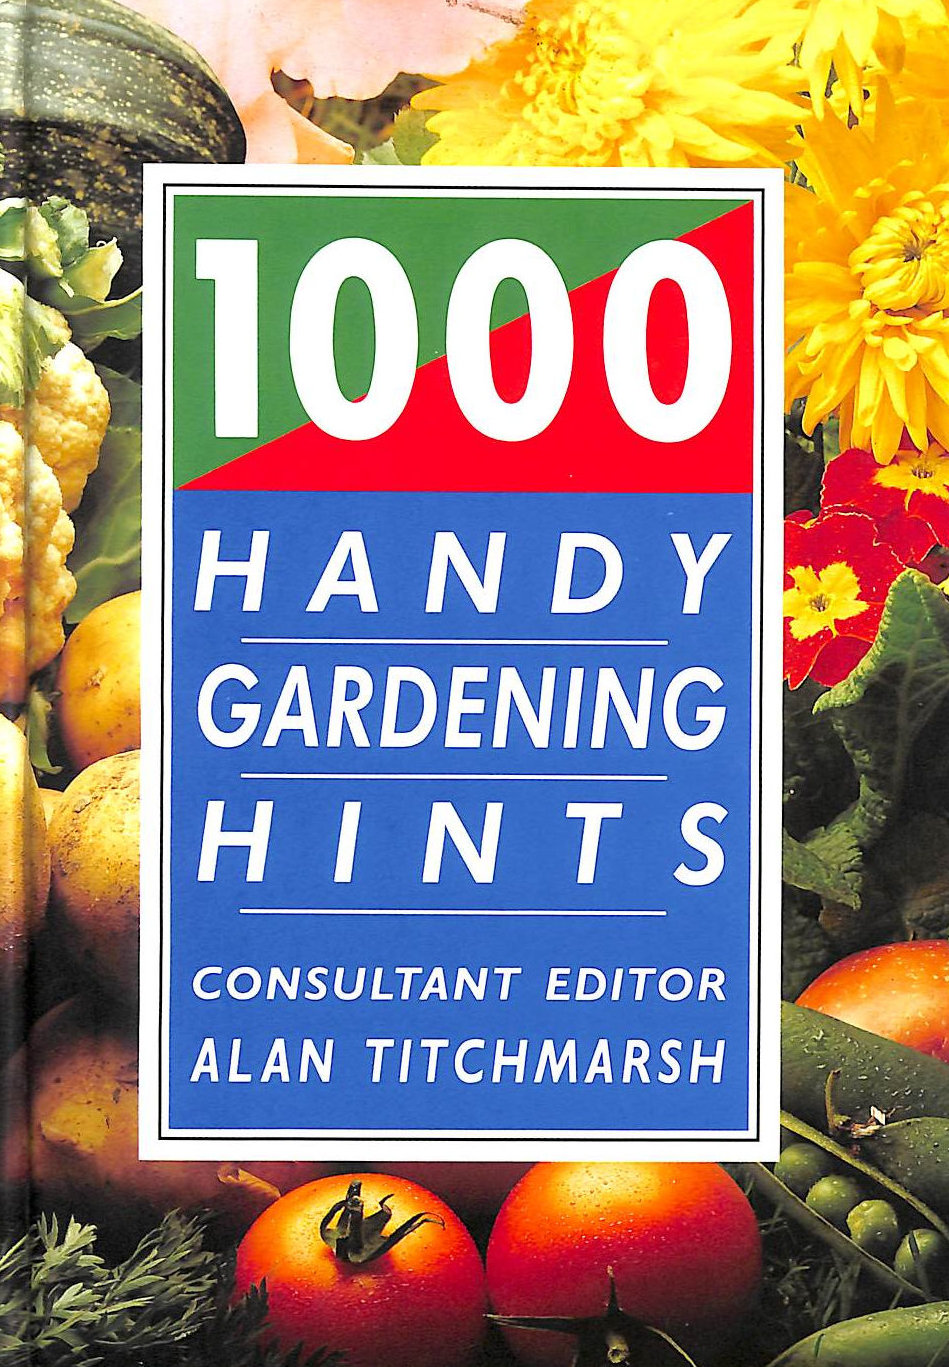 Image for 1000 Handy Gardening Hints